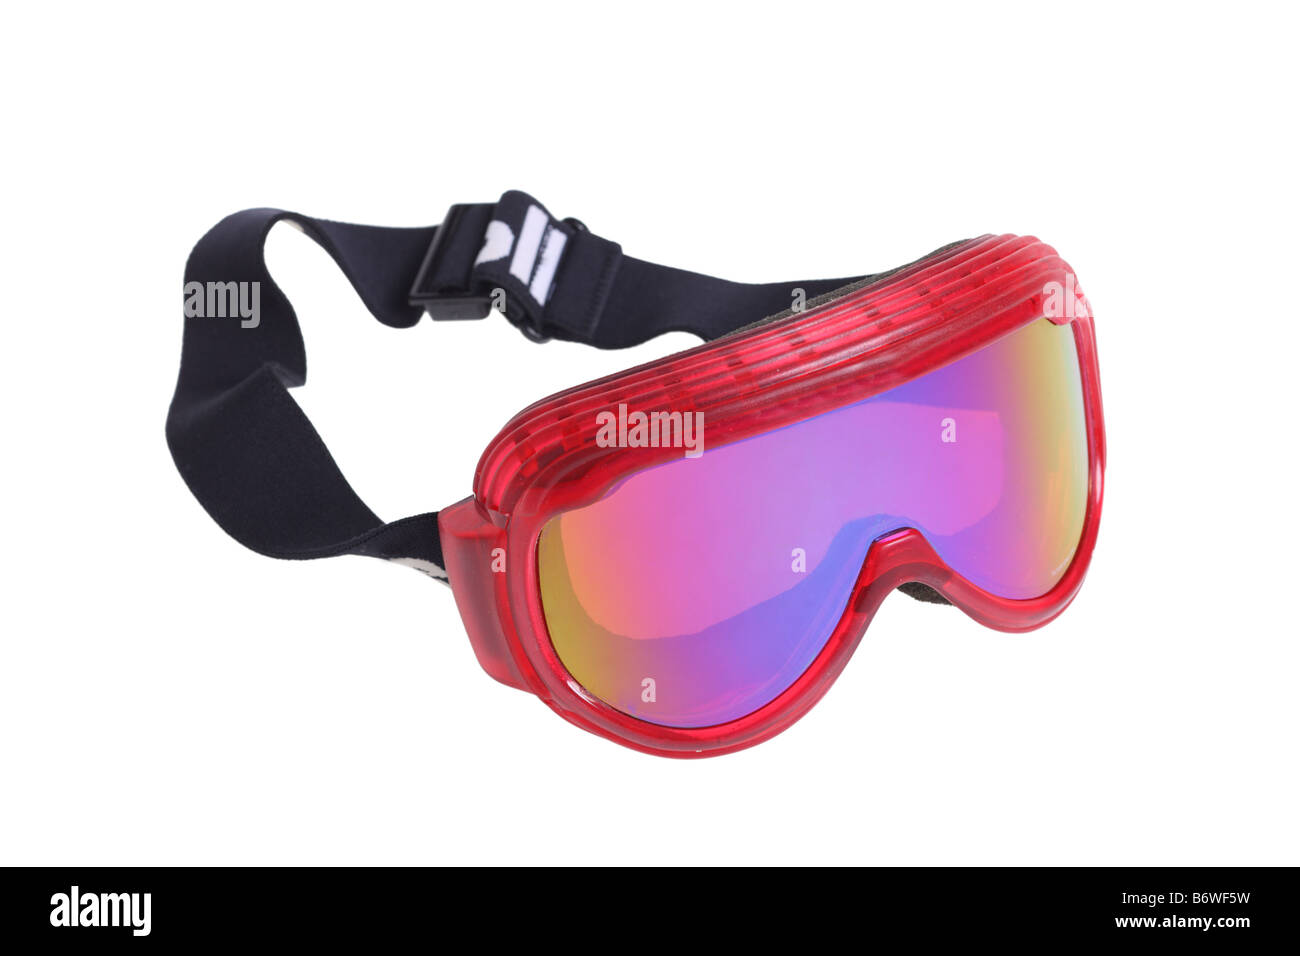 Ski goggles cut out isolated on white background - Stock Image